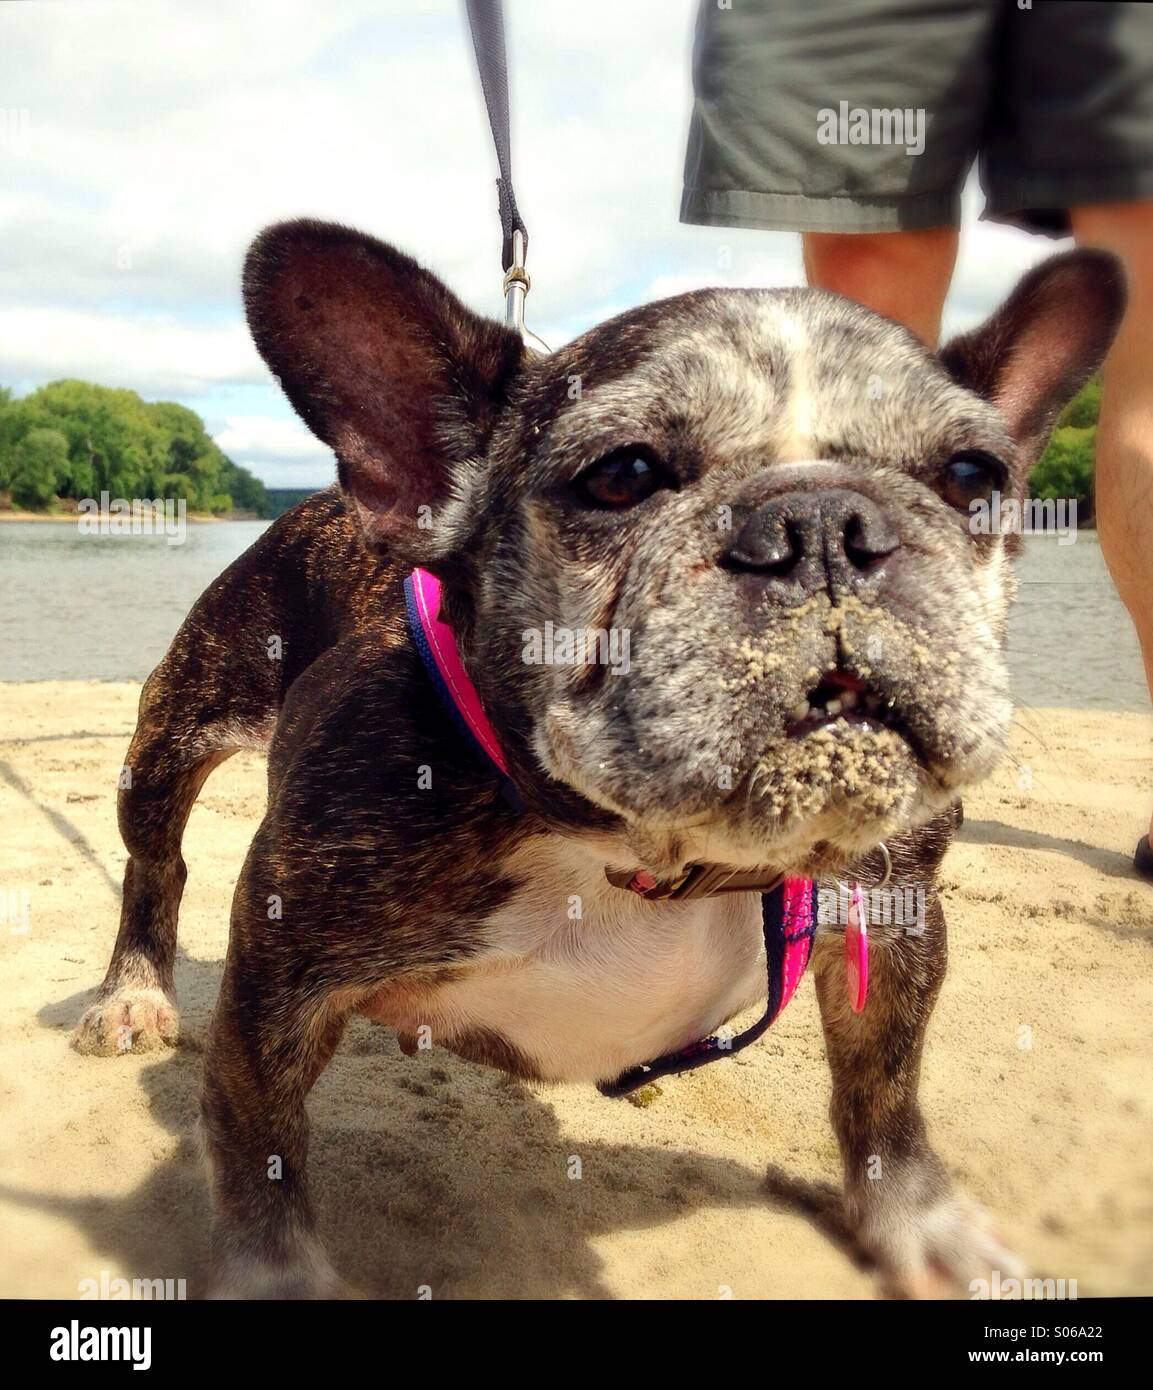 A funny french bulldog with sand on her face. Stock Photo